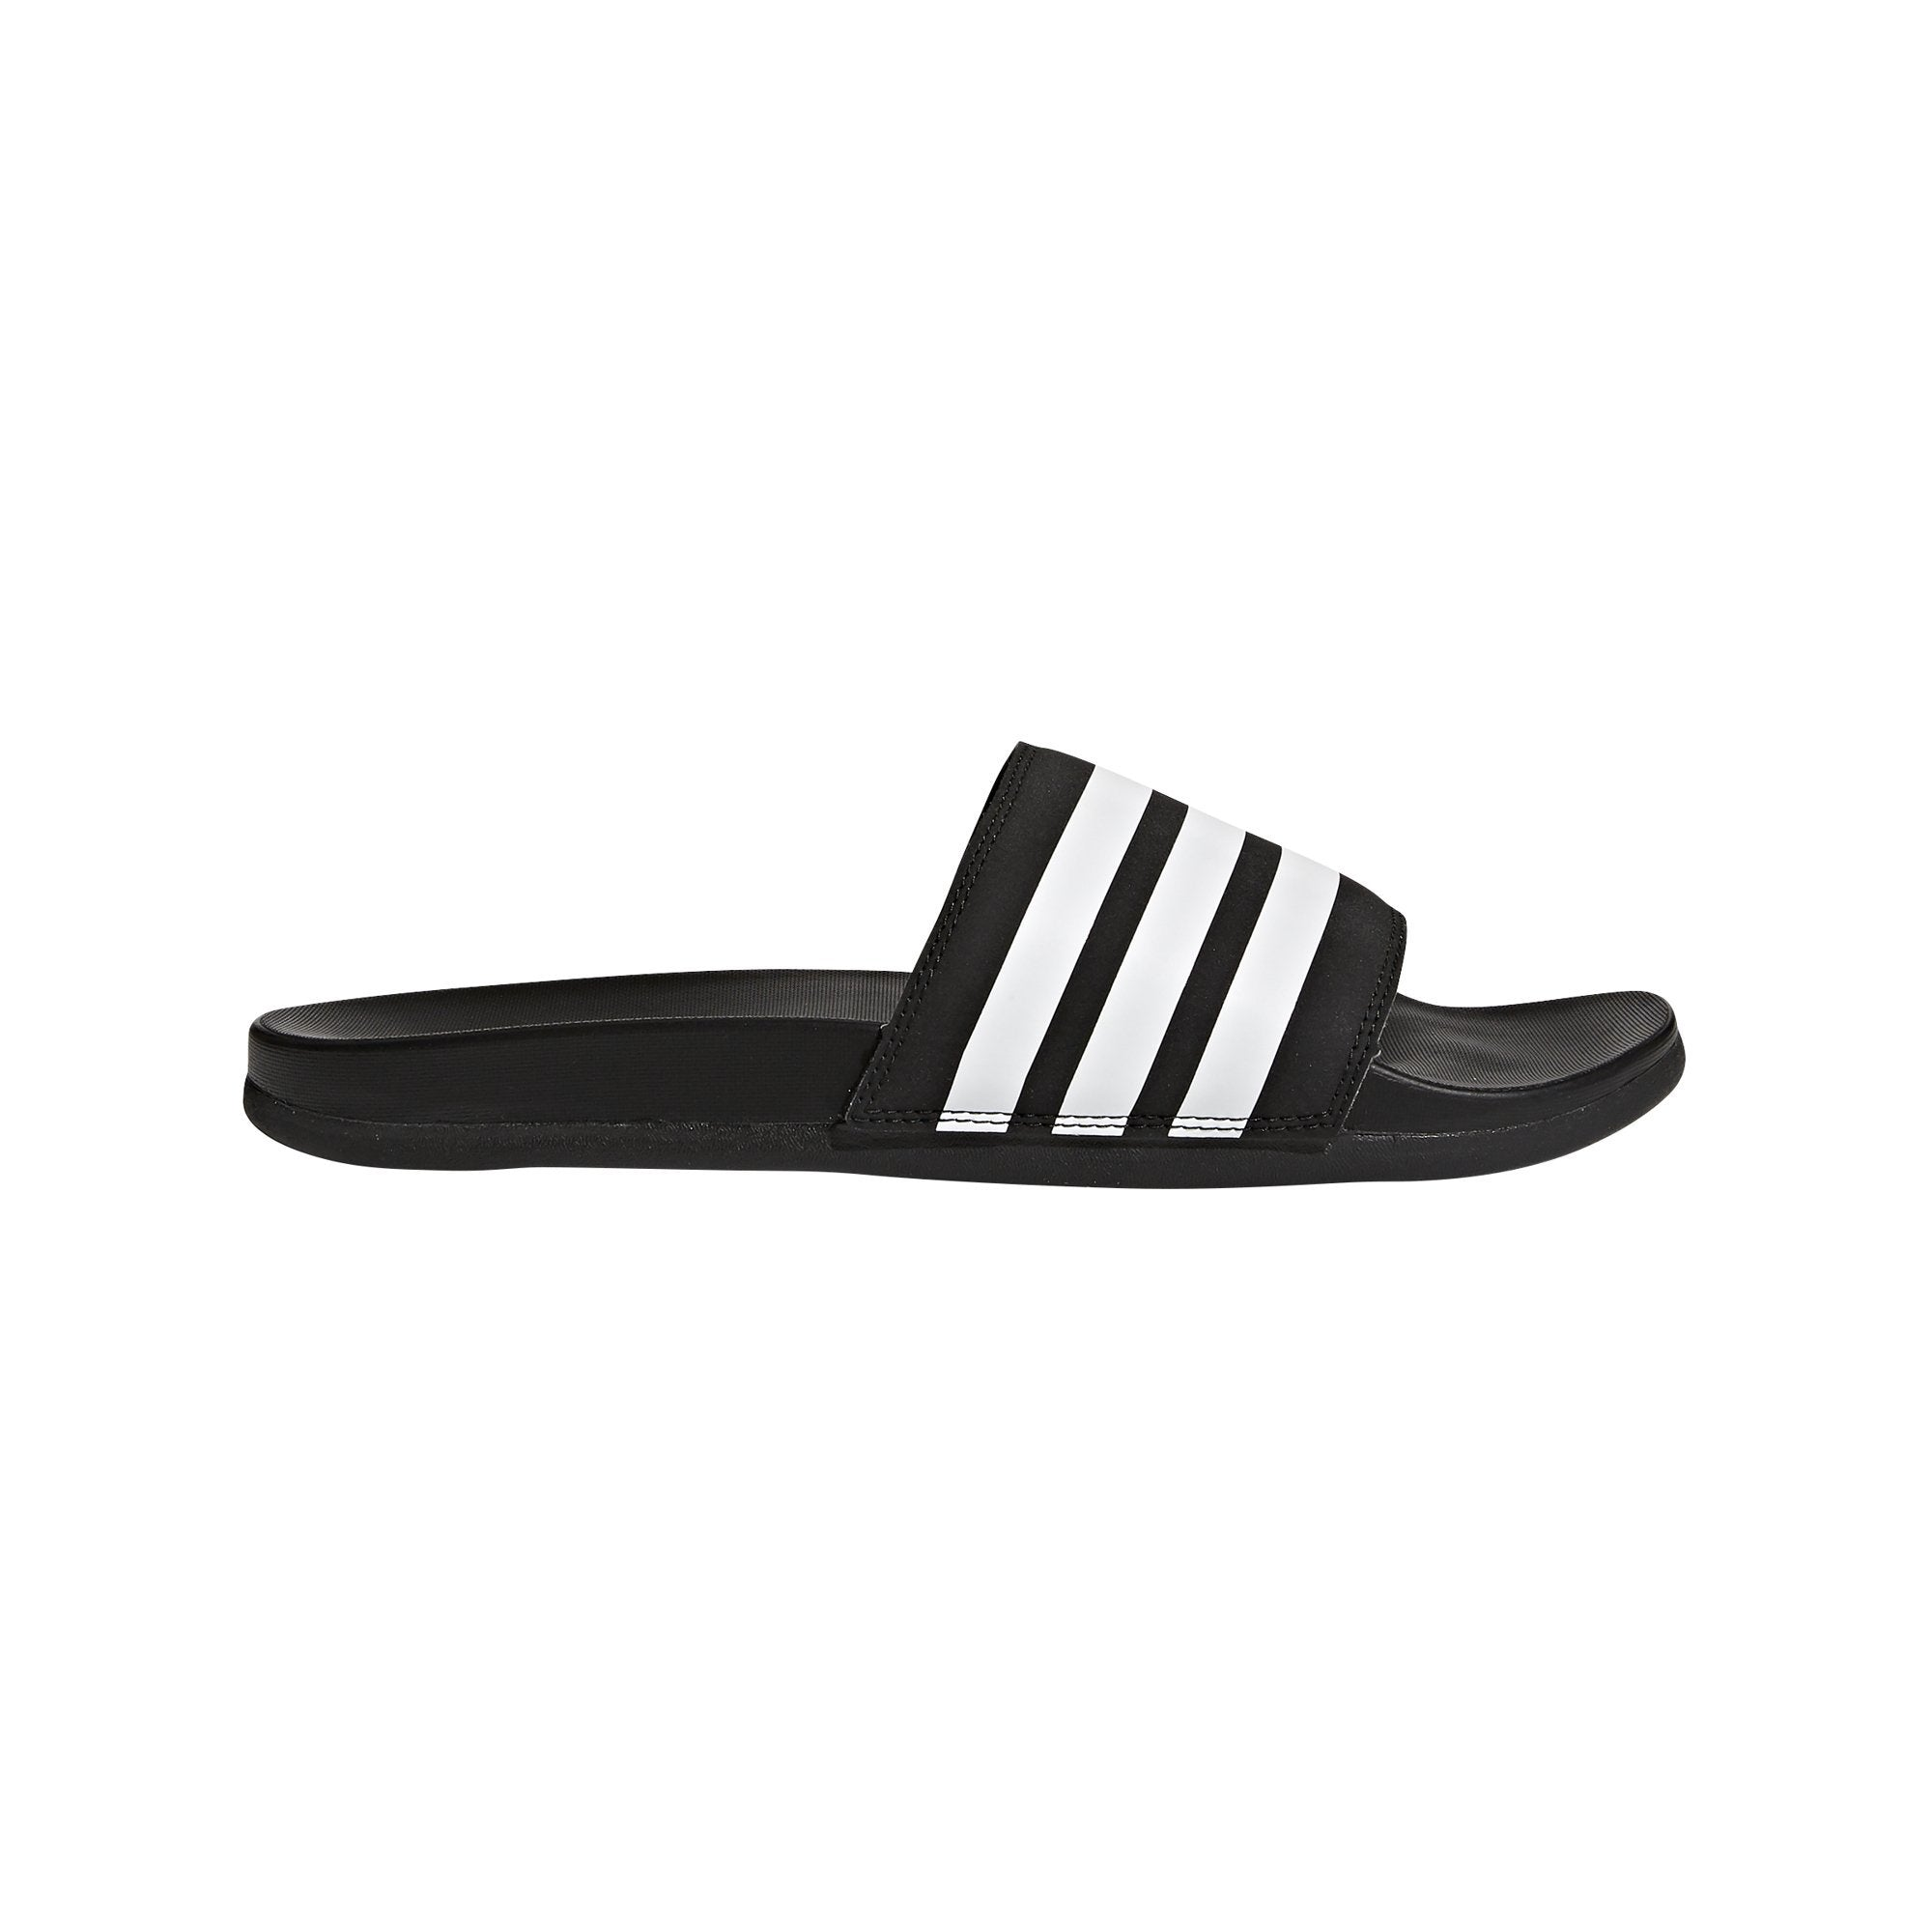 Adidas Adilette Cloudfoam Plus Slides - core blakc/ftwr white/core black SportsPower Geelong